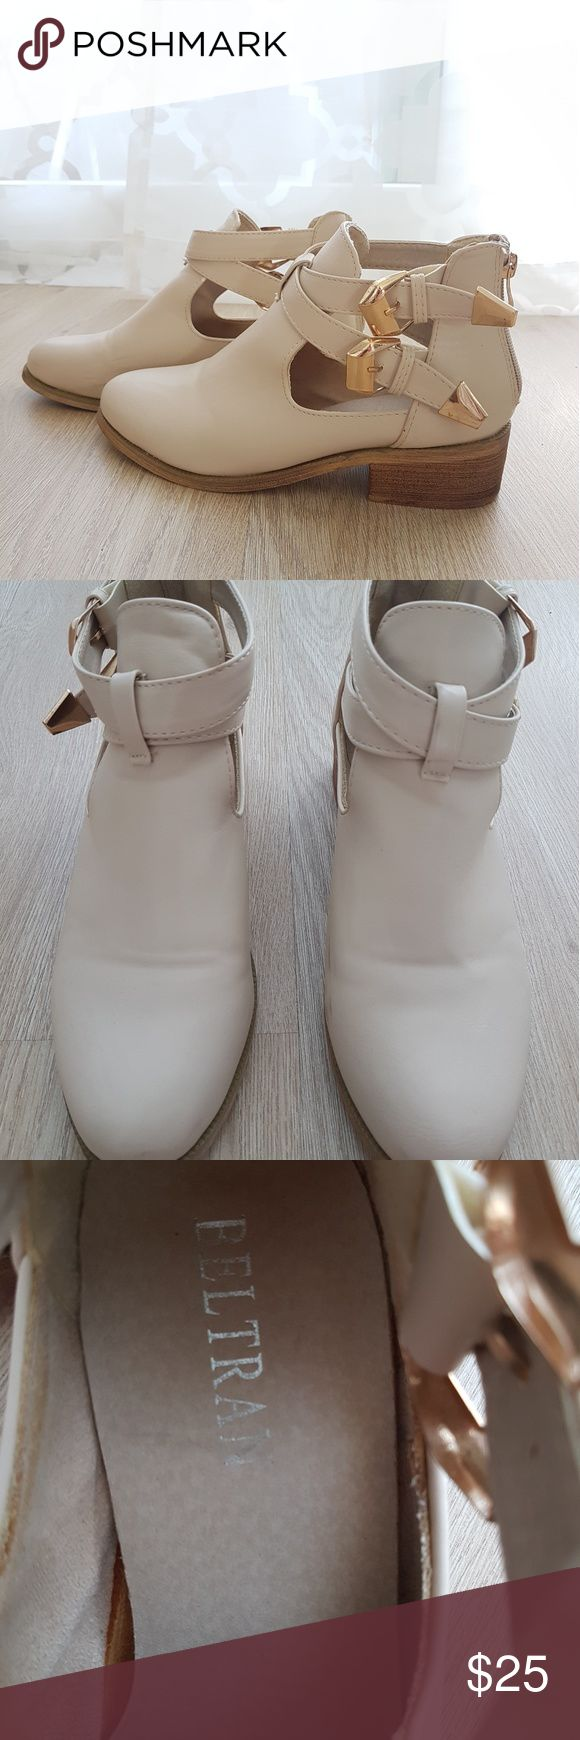 Buckle Ankle Boots / Made in Italy Cream ankle boots with gold buckles, size 6EU/36EU. Made in Italy, so super comfortable and soft. I'll be moving soon, so help me sell some stuff!   *All my items are brought straight from Italy, except for those from chains like Zara&Bershka* Shoes Ankle Boots & Booties